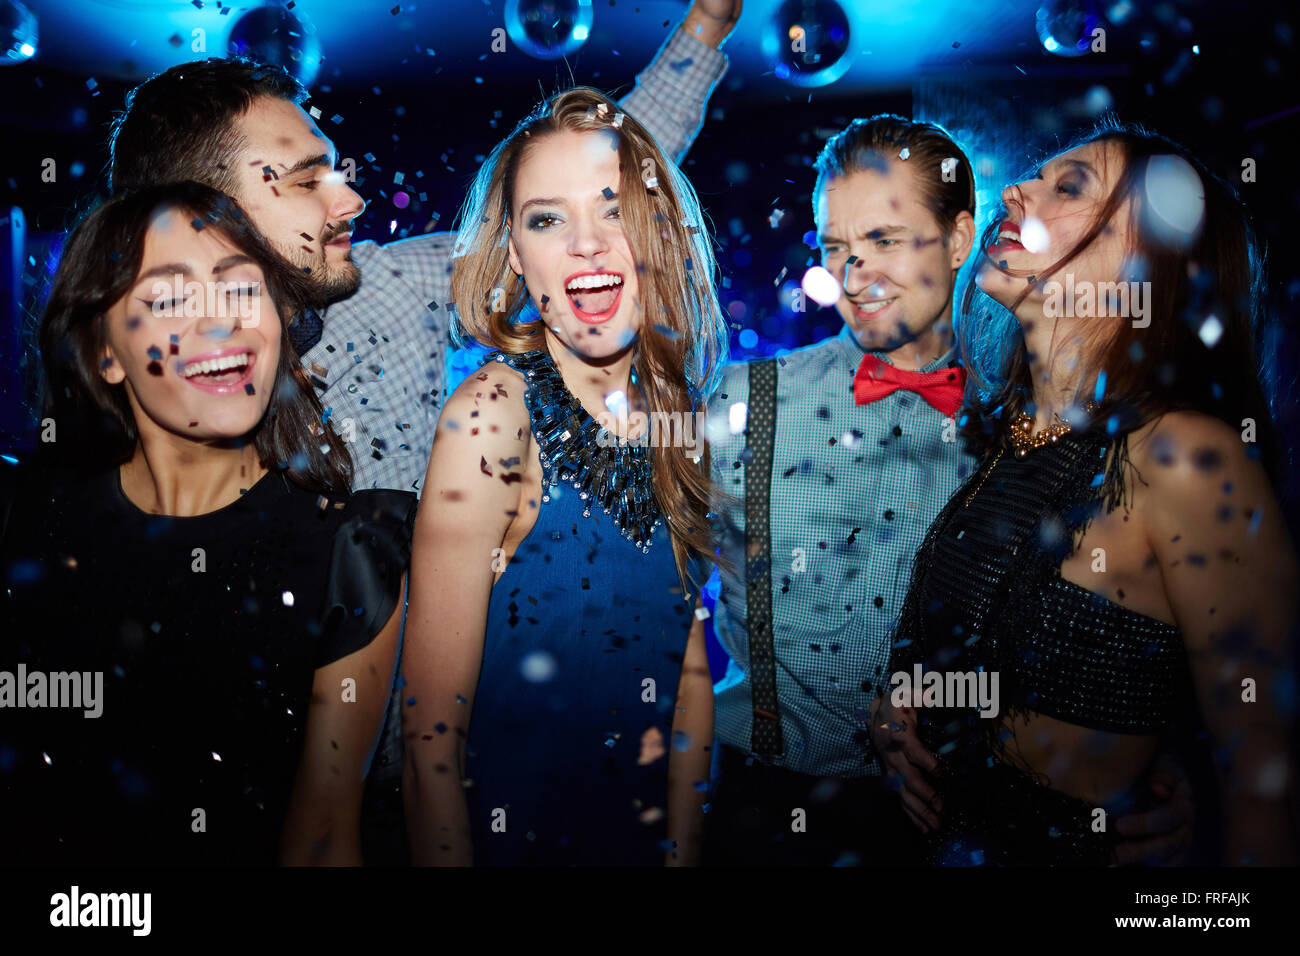 Ecstatic dancer - Stock Image